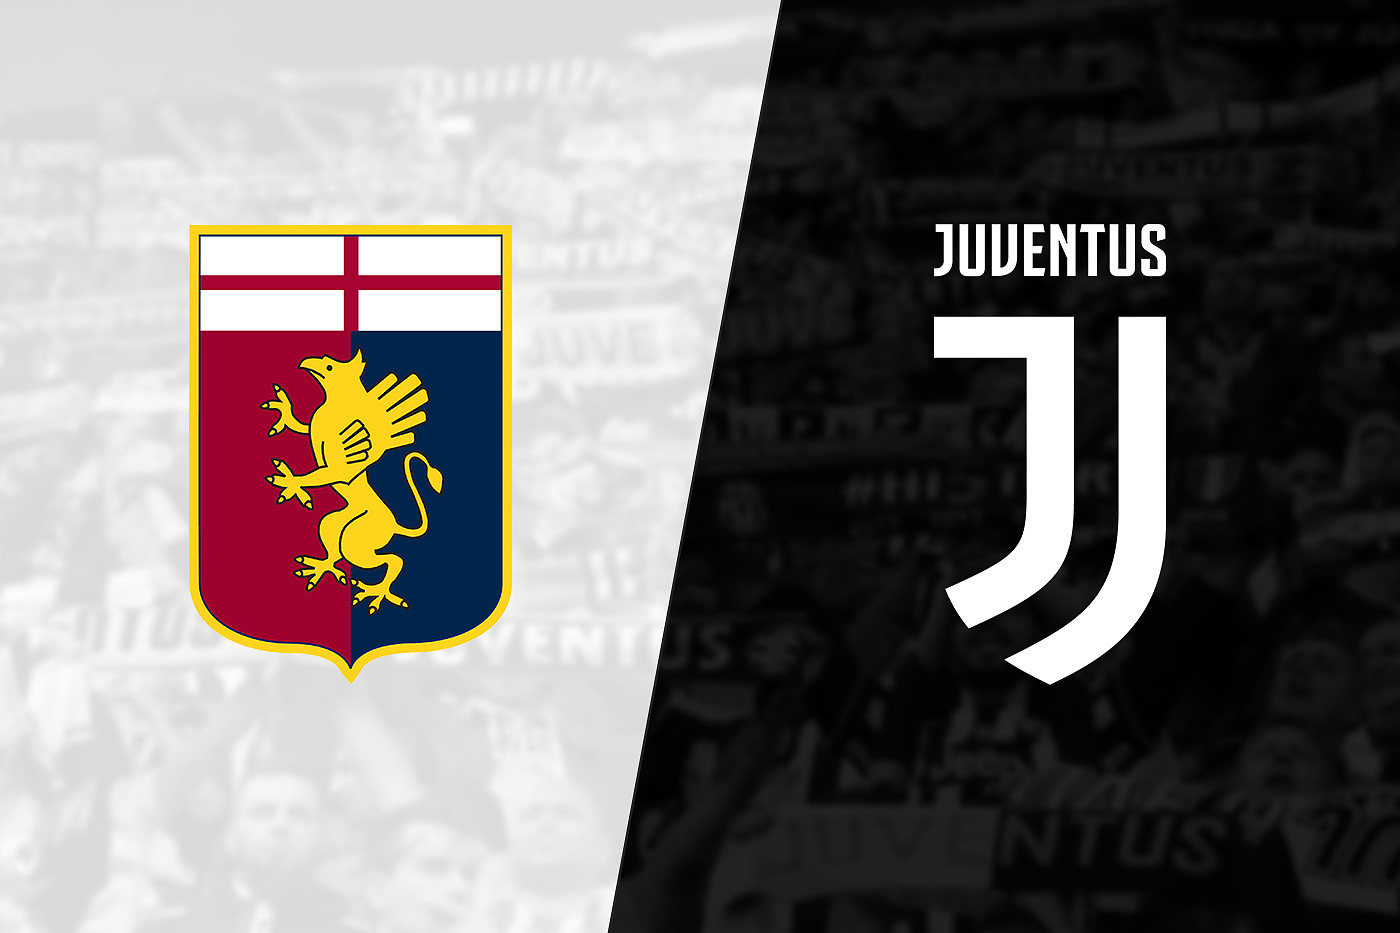 GENOA JUVENTUS Streaming Gratis: info Highlights Video YouTube Diretta Facebook con Cellulare Tablet PC, come vederla Gratis in TV e DAZN